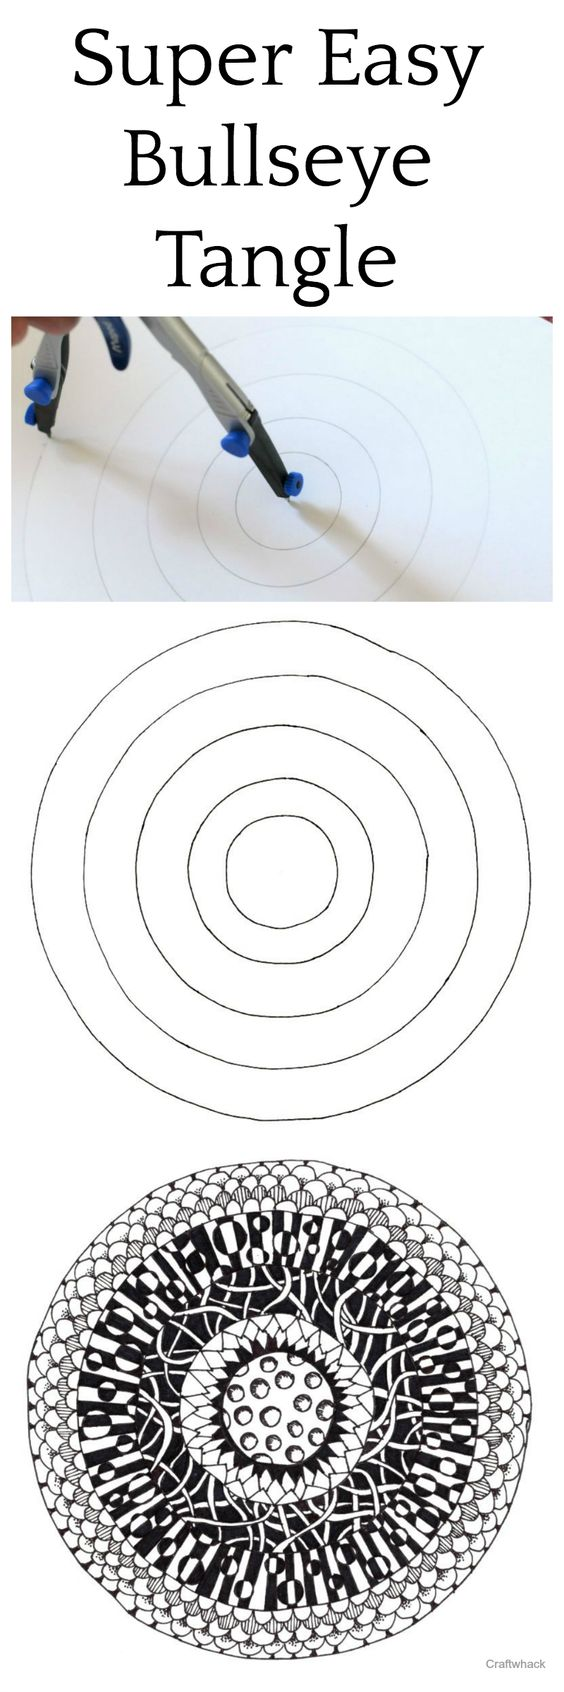 How to make a cool bullseye tangle drawing pinterest for Super easy drawings